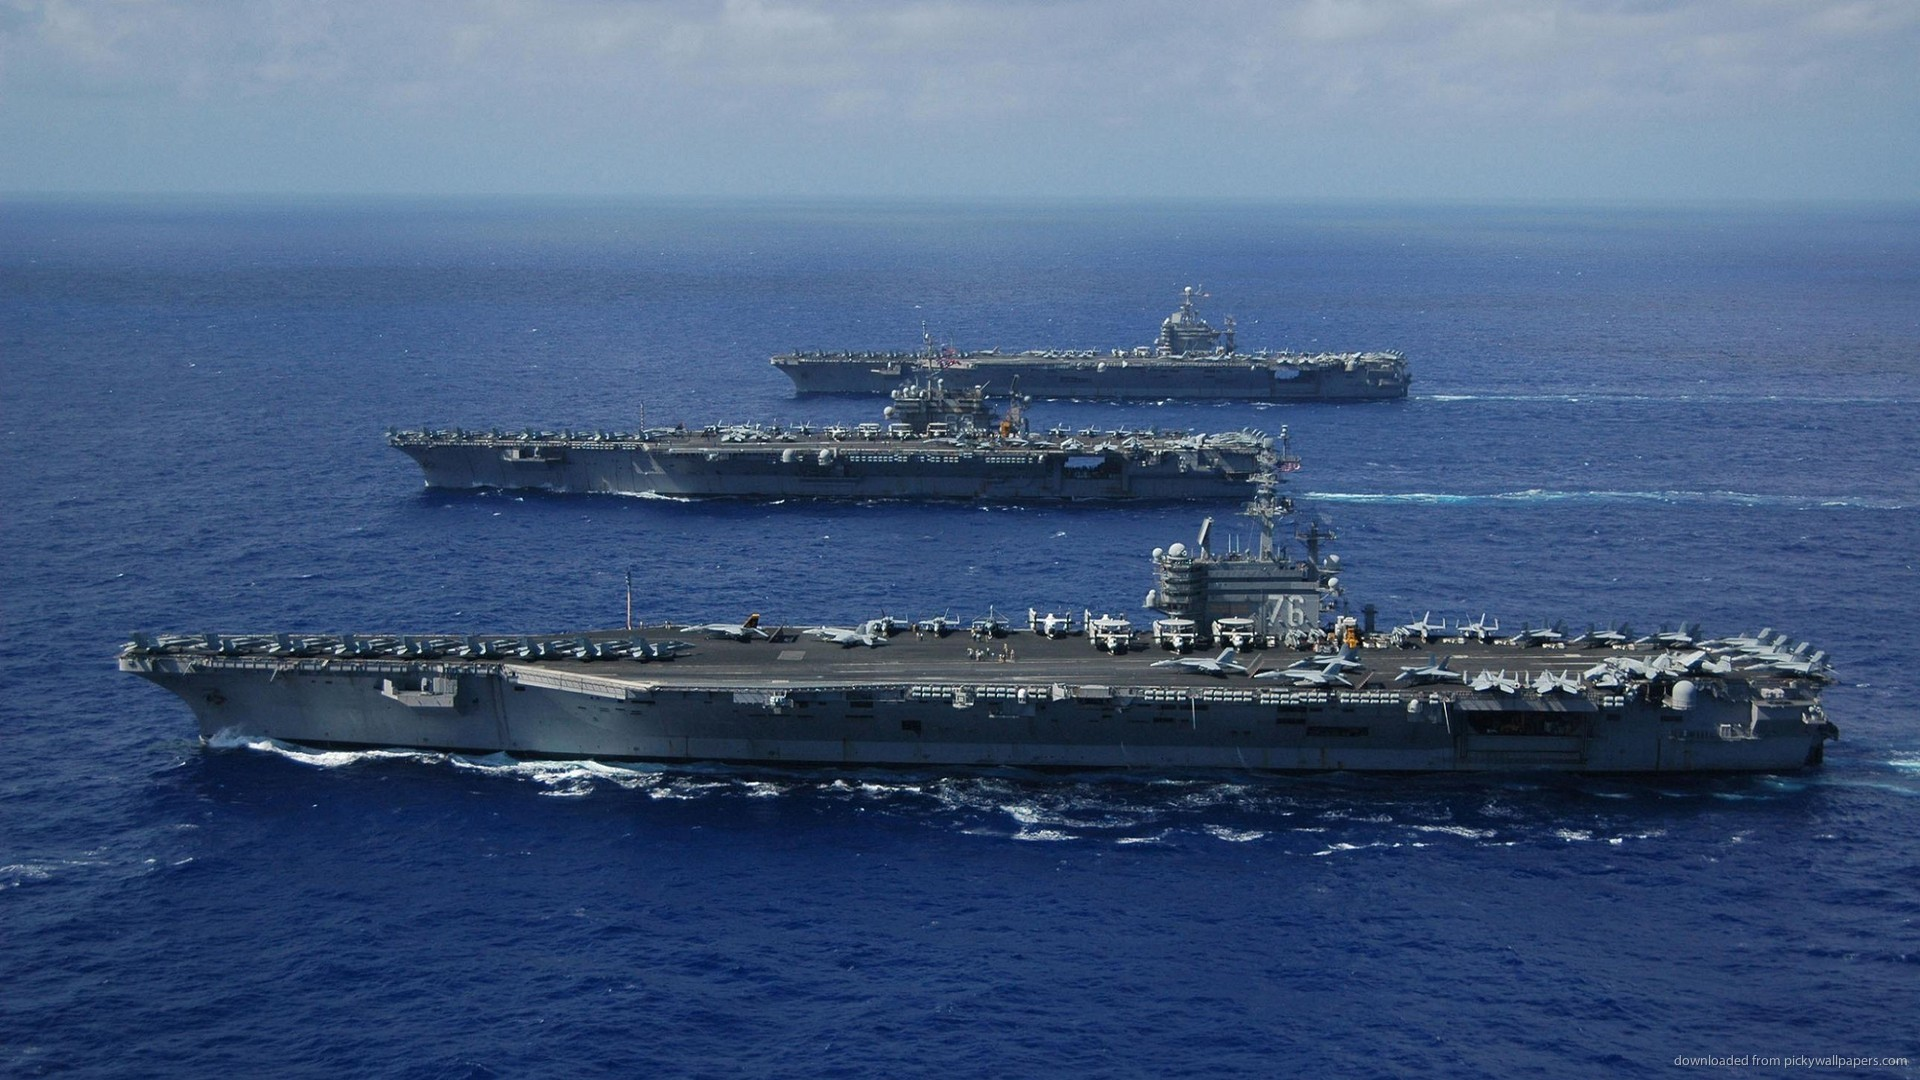 U.S. Navy Ships picture